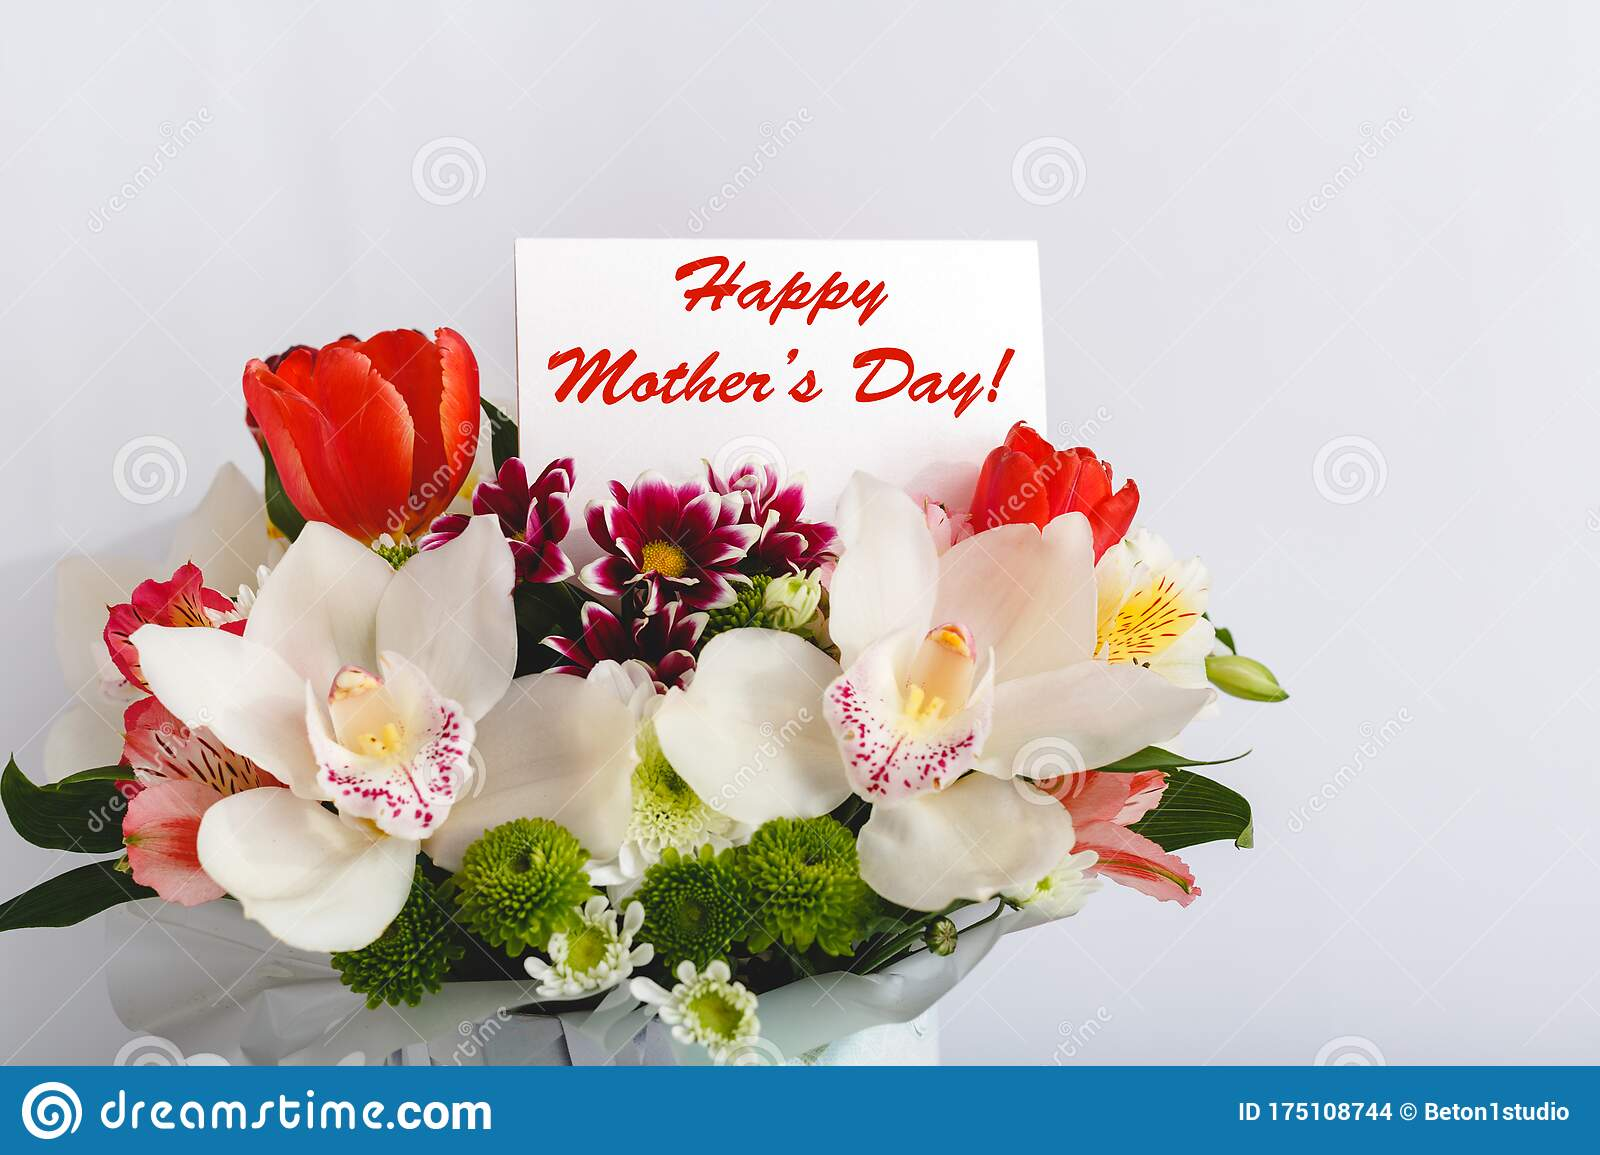 Happy Mothers Day Text On Gift Card In Flower Bouquet On White Background Greeting Card For Mom Flower Delivery Congratulations Stock Photo Image Of Celebration Mother 175108744